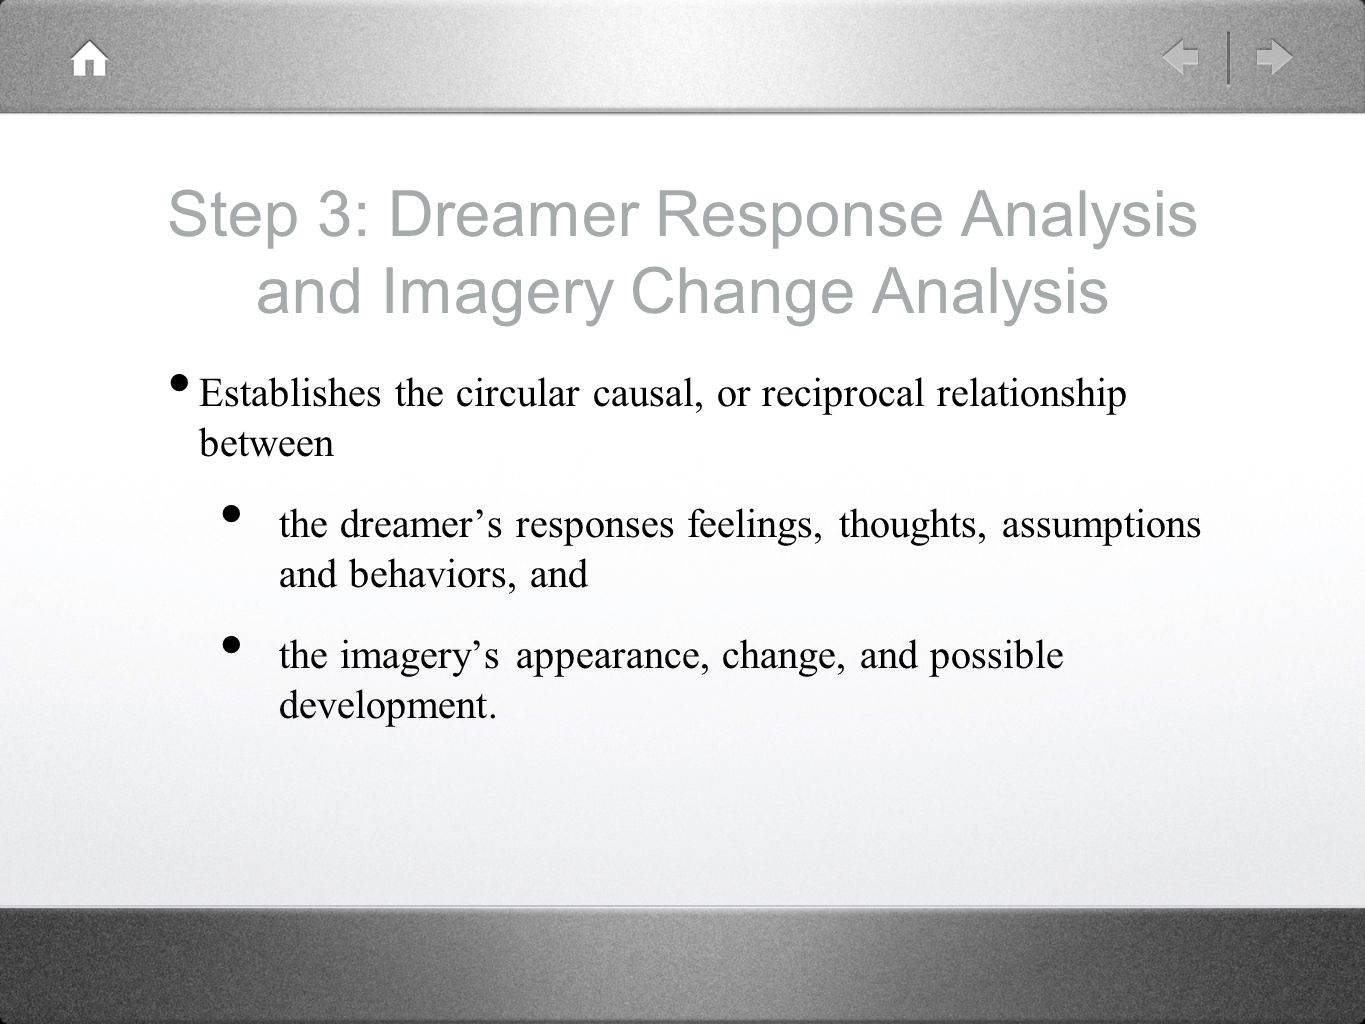 Step 3: Dreamer Response Analysis and Imagery Change Analysis Establishes the circular causal, or reciprocal relationship between the dreamer's responses feelings, thoughts, assumptions and behaviors, and the imagery's appearance, change, and possible development.